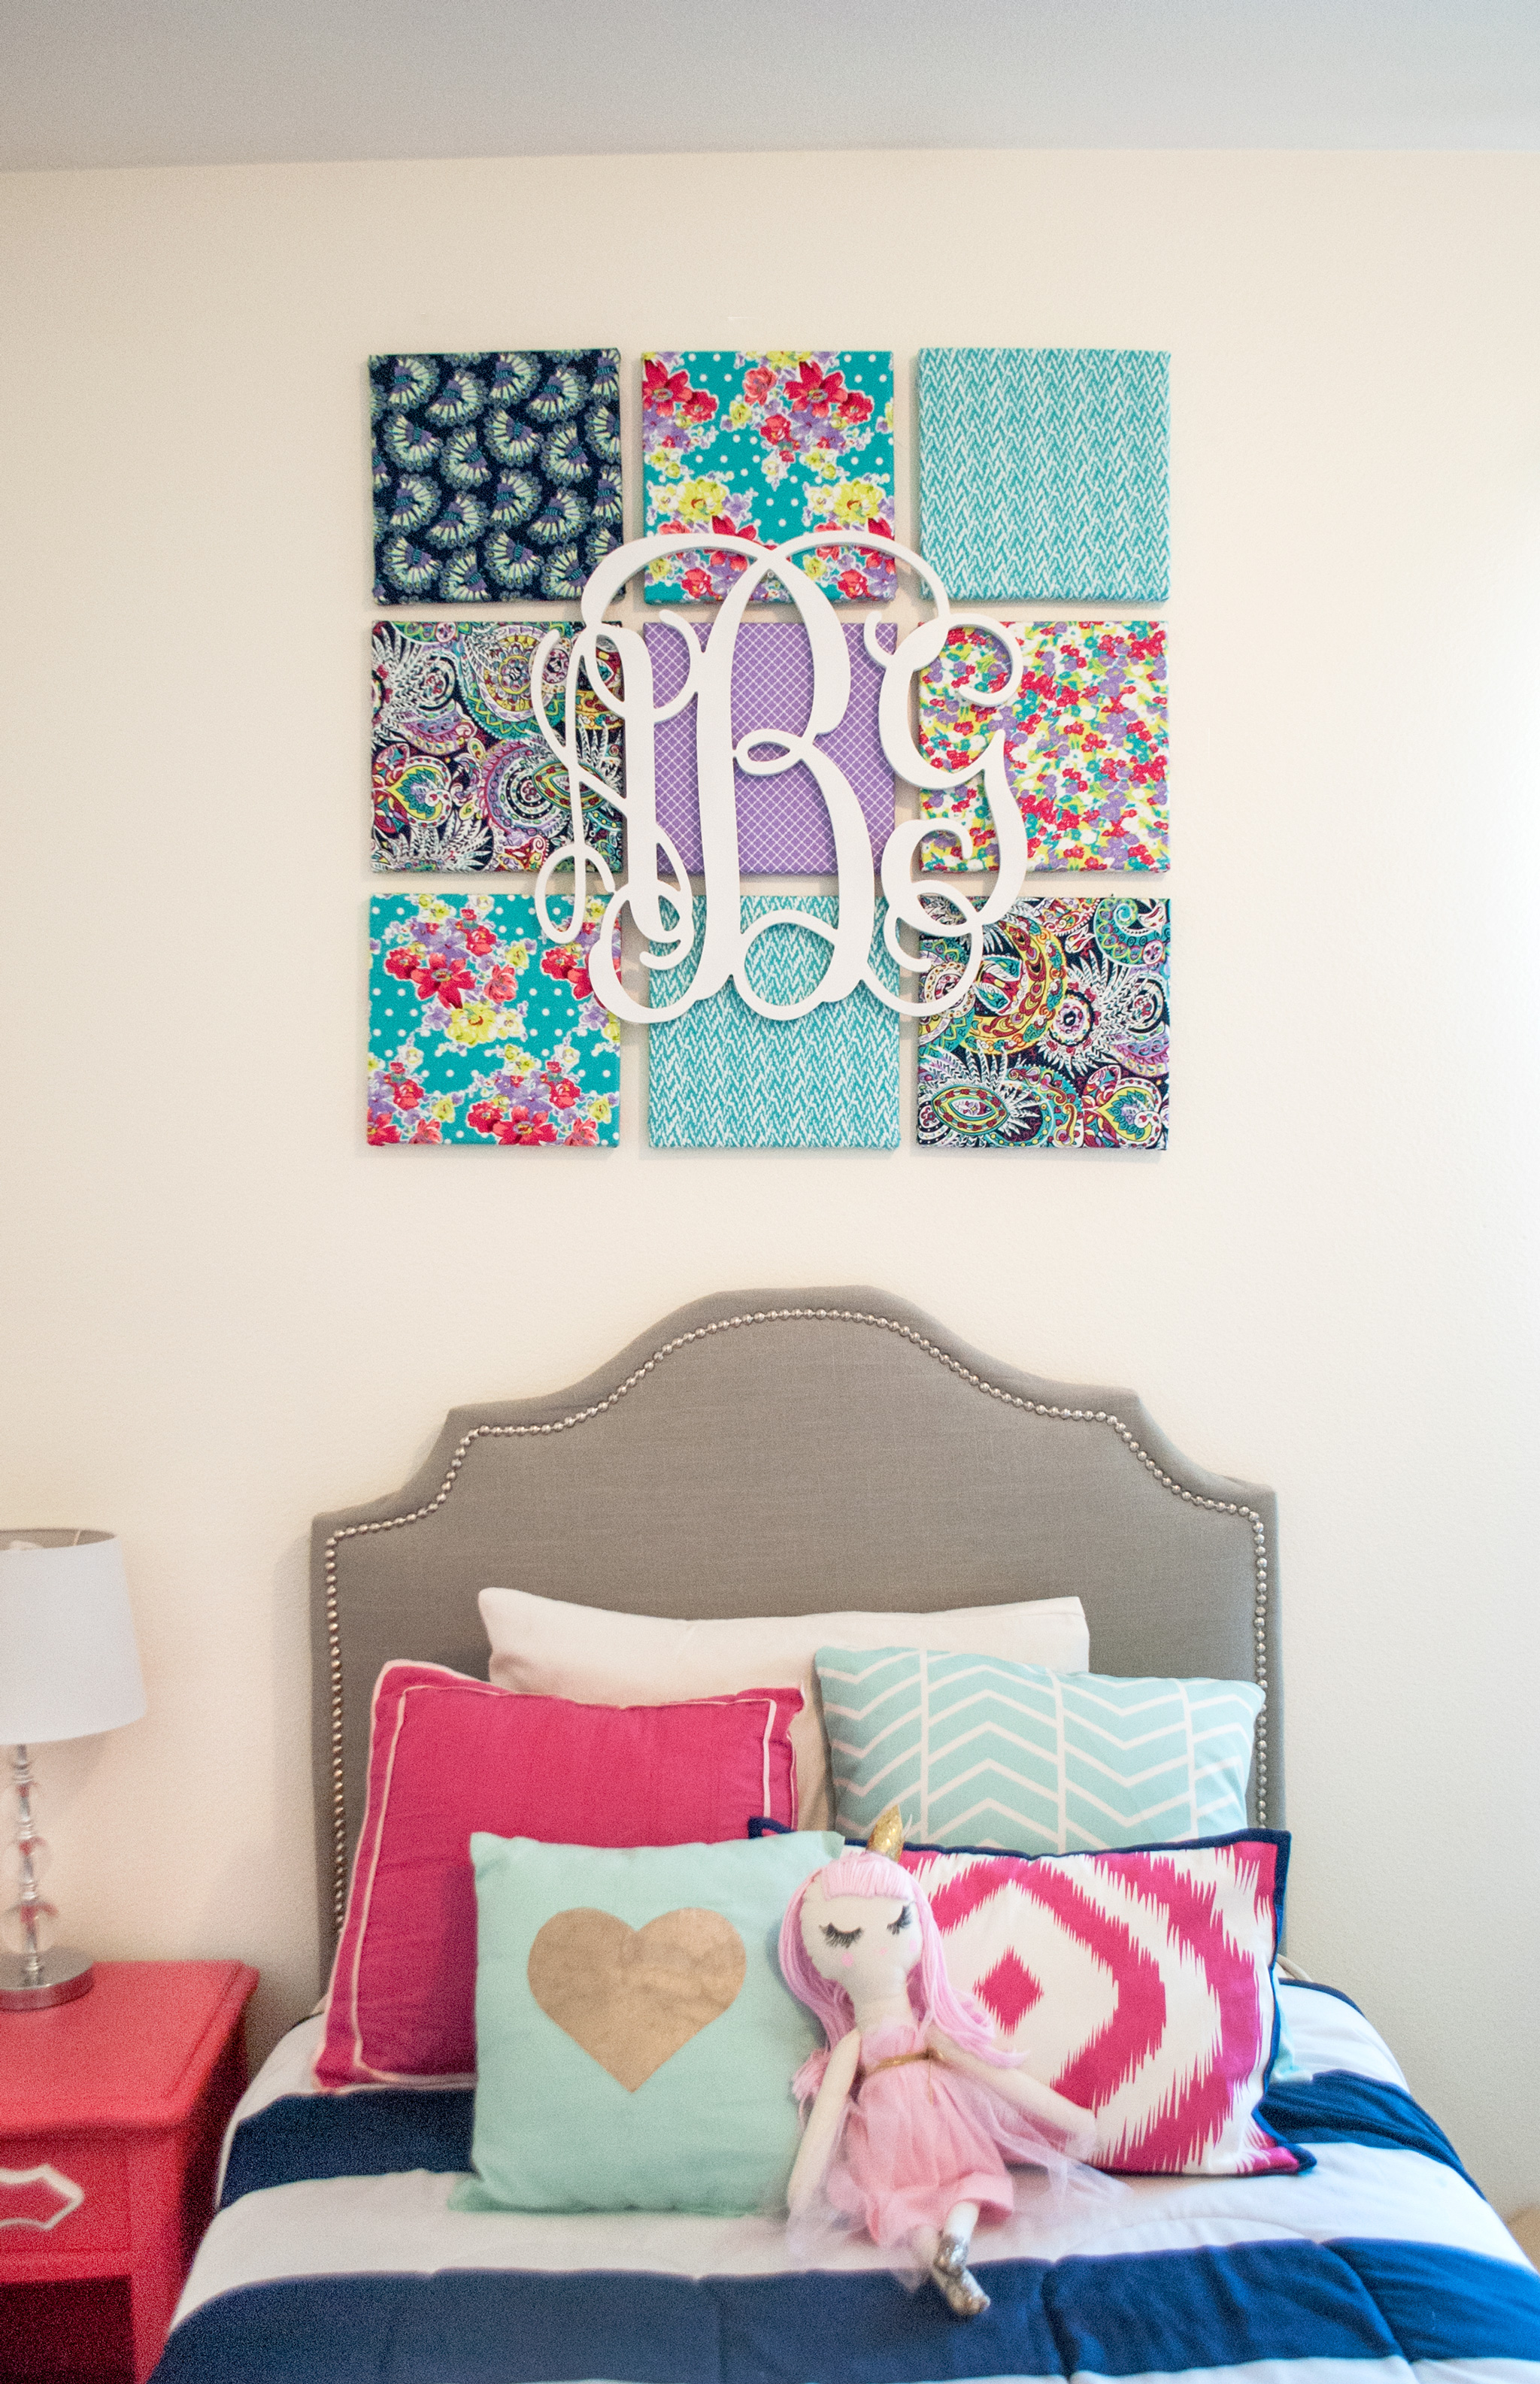 Fabric Covered Canvas with Monogram